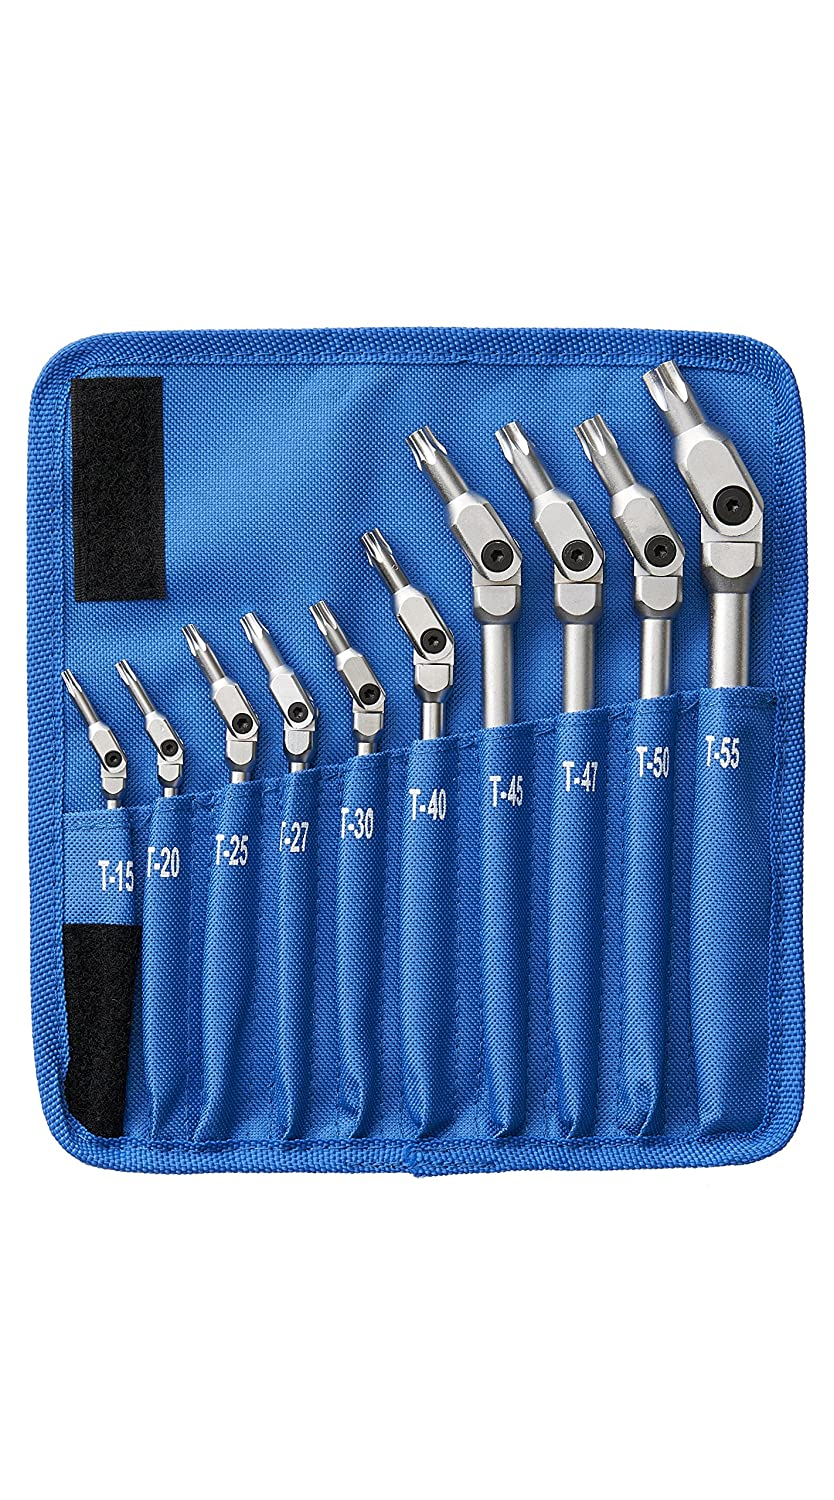 Bondhus 00022 HEX-PRO Pivot Head Torx Wrench Set (10 Piece), Includes Sizes: T15, T20, T25, T27, T30, T40, T45, T47, T50 & T55, Chrome